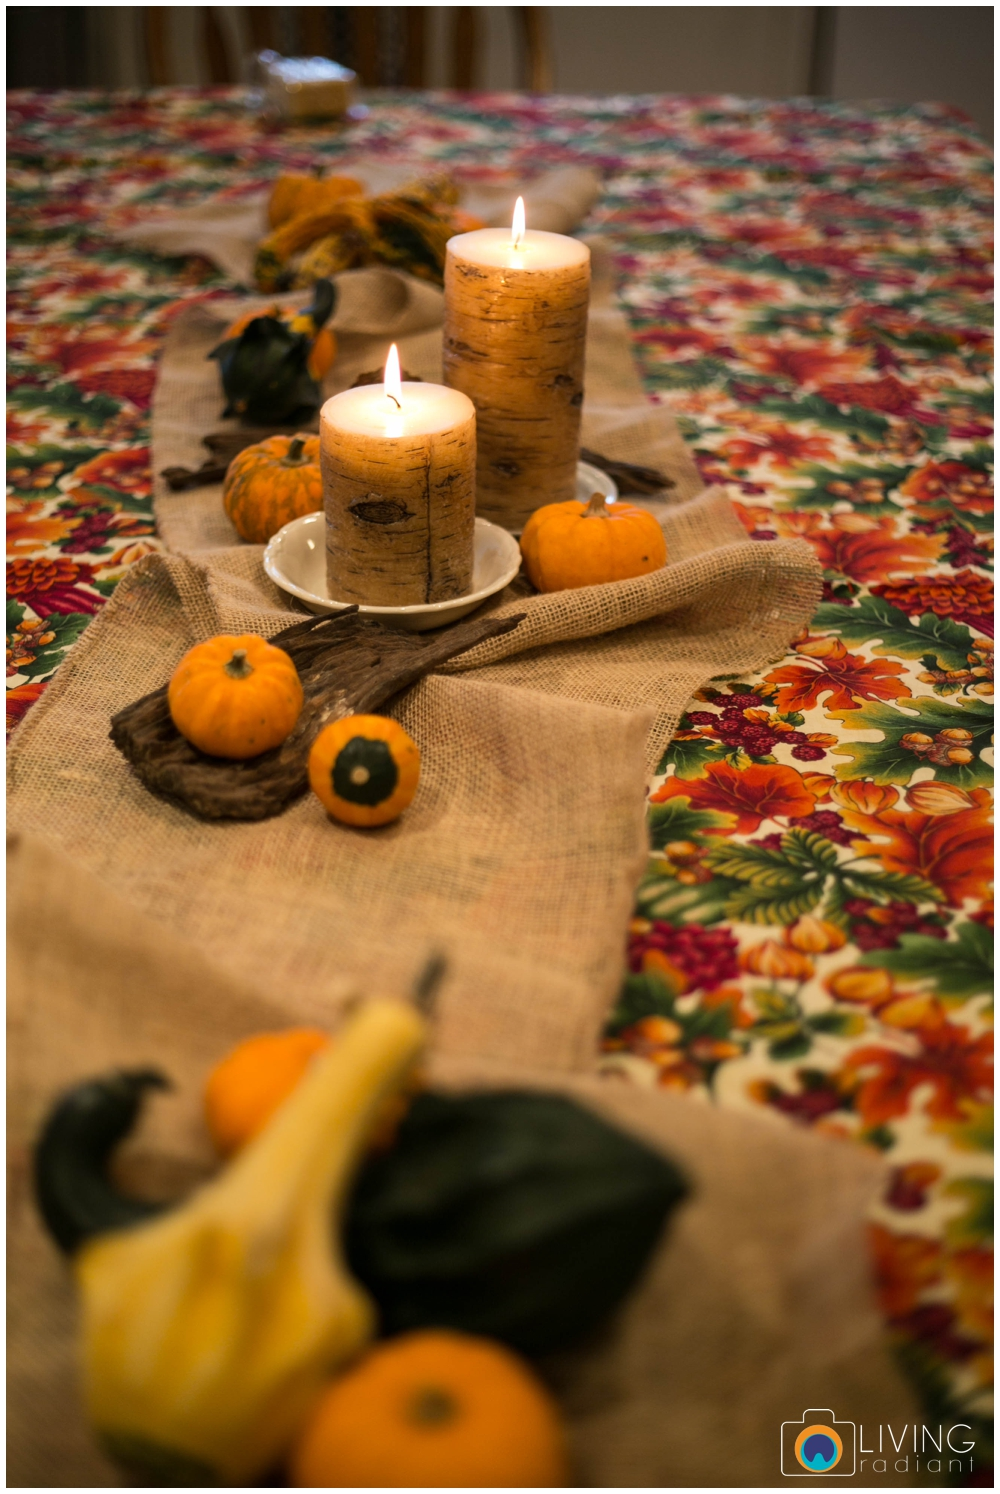 hoffman-nolan-libous-thanksgiving-family-pumpkins-and-pinecones_0001.jpg